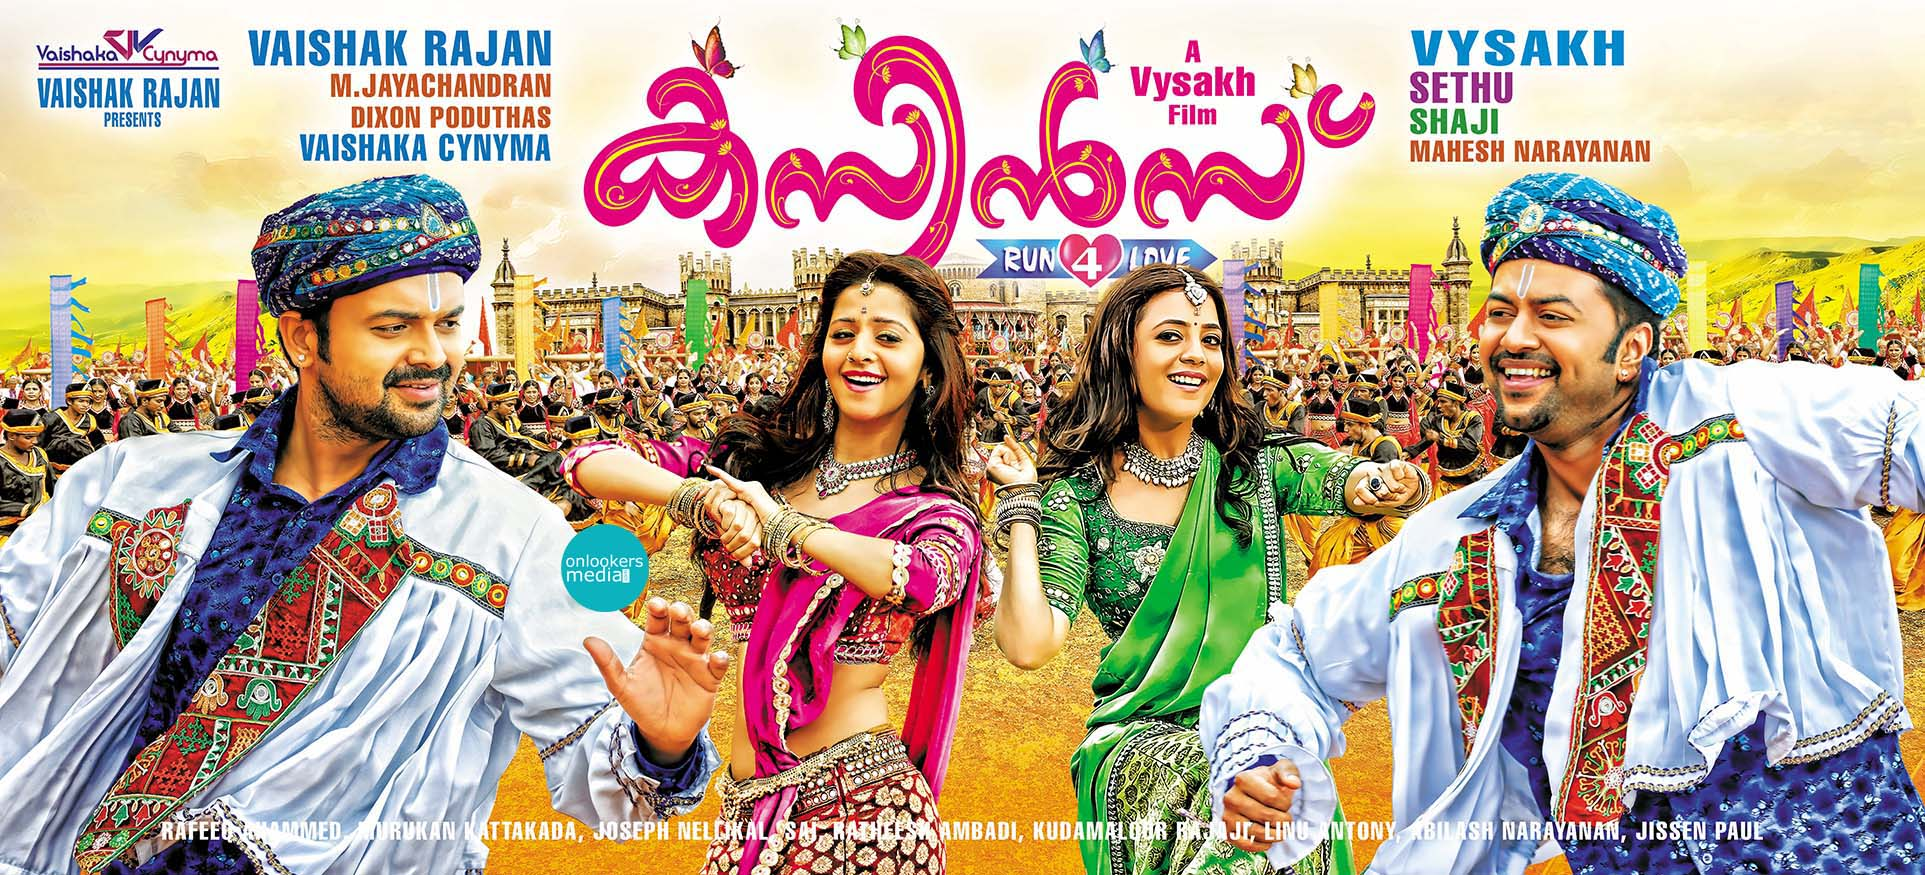 http://onlookersmedia.in/wp-content/uploads/2014/12/Cousins-Posters-Stills-Images-Review-Report-Collection-Kunchacko-Boban-Indrajith-Nisha-Agarwal-Vedhika-Miya-Onlookers-Media-14.jpg